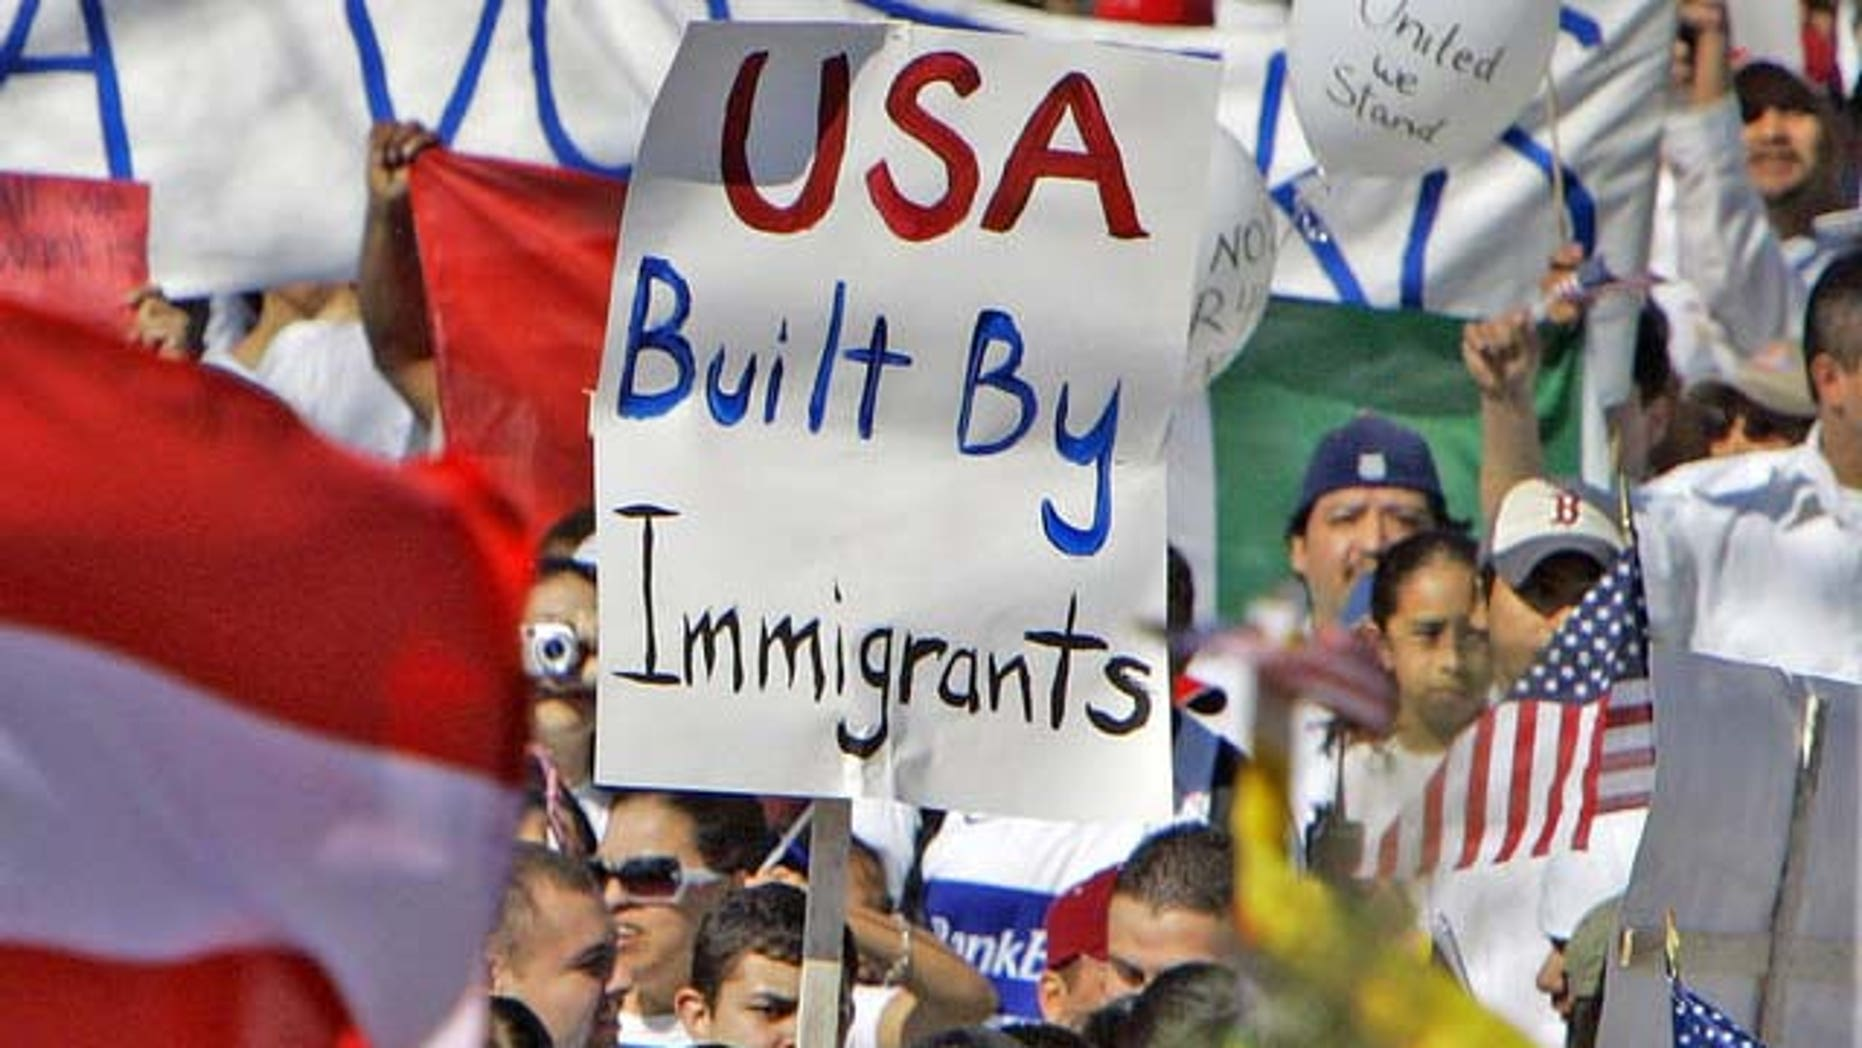 """Some 4,000 people attend a rally outside the Capitol in Lincoln, Neb., Monday, April 10, 2006, where protesters carried flags from the United States, Mexico and other nations. Thousands of immigrants gathered at rallies across the state Monday as part of a national day of action billed as a """"campaign for immigrants' dignity."""" (AP Photo/Nati Harnik)"""